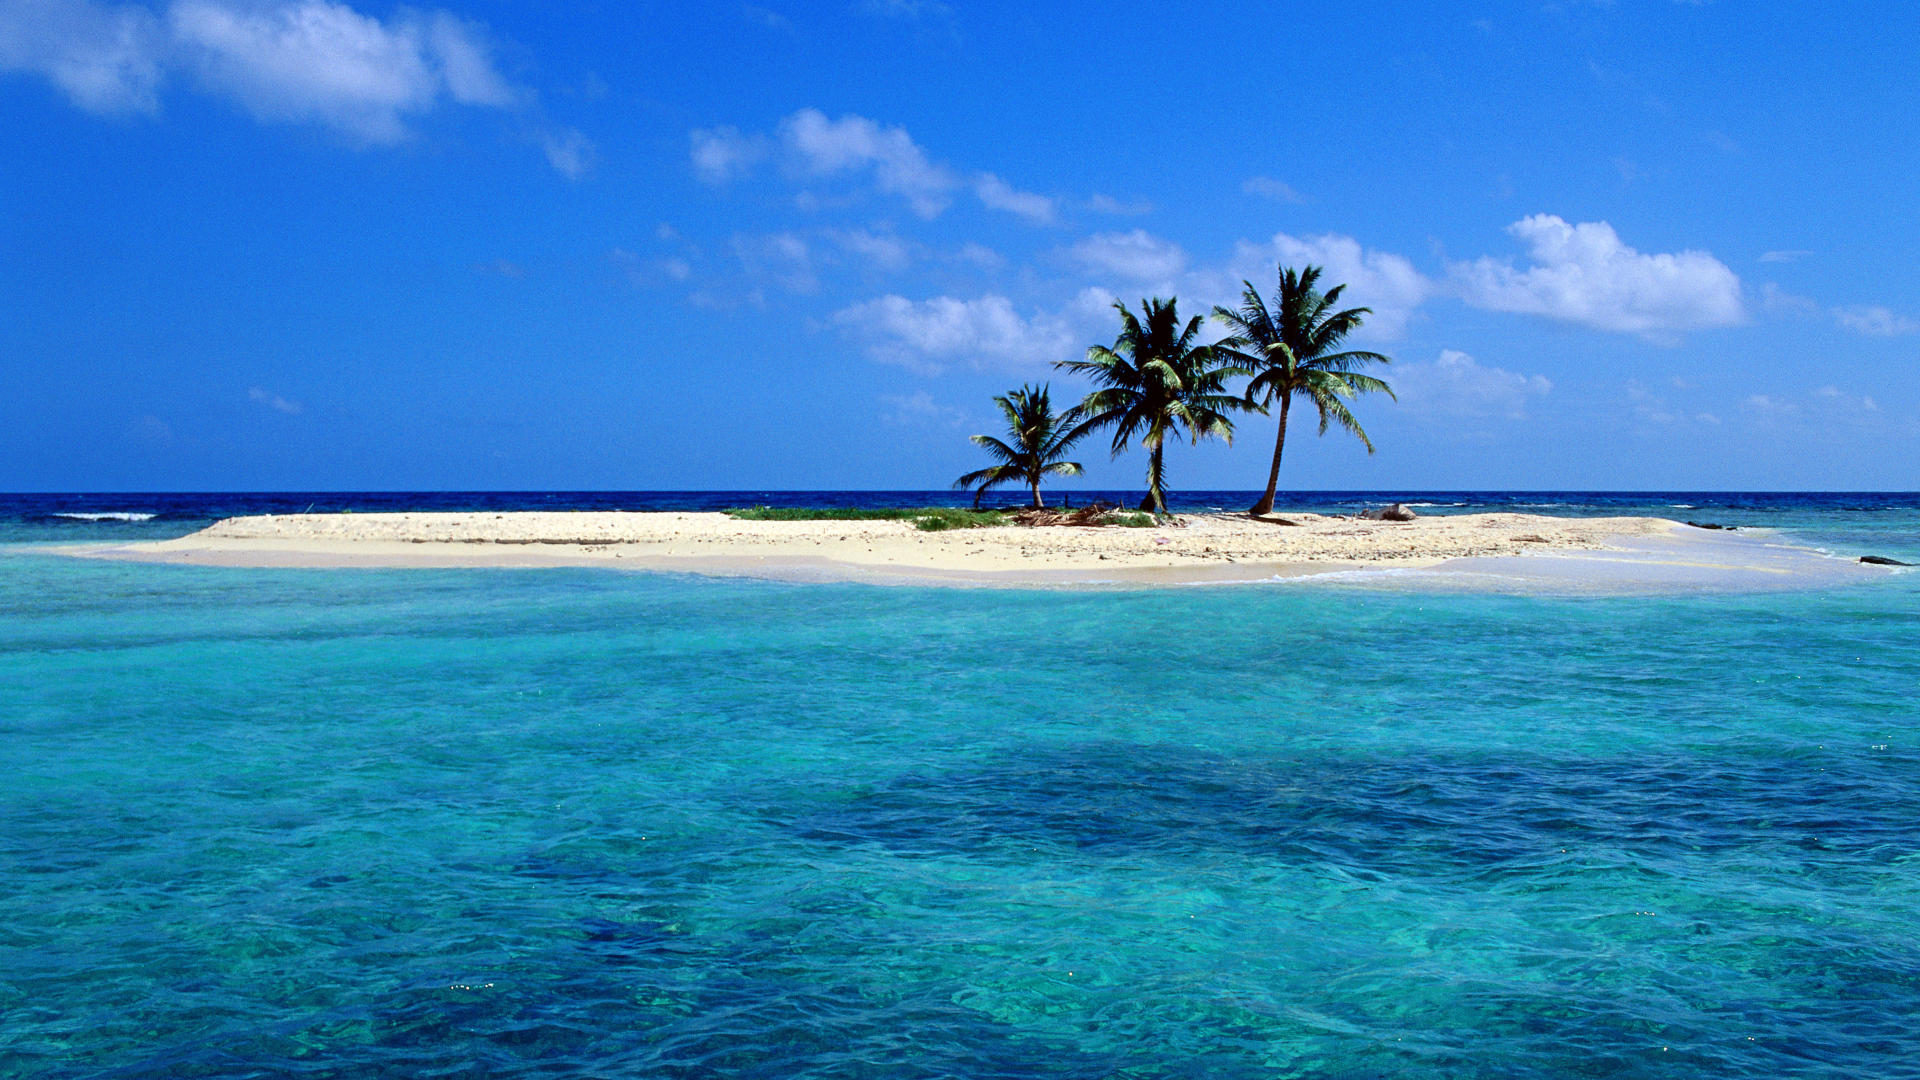 backgrounds desktop belize wallpaper island sandy beach 1920x1080